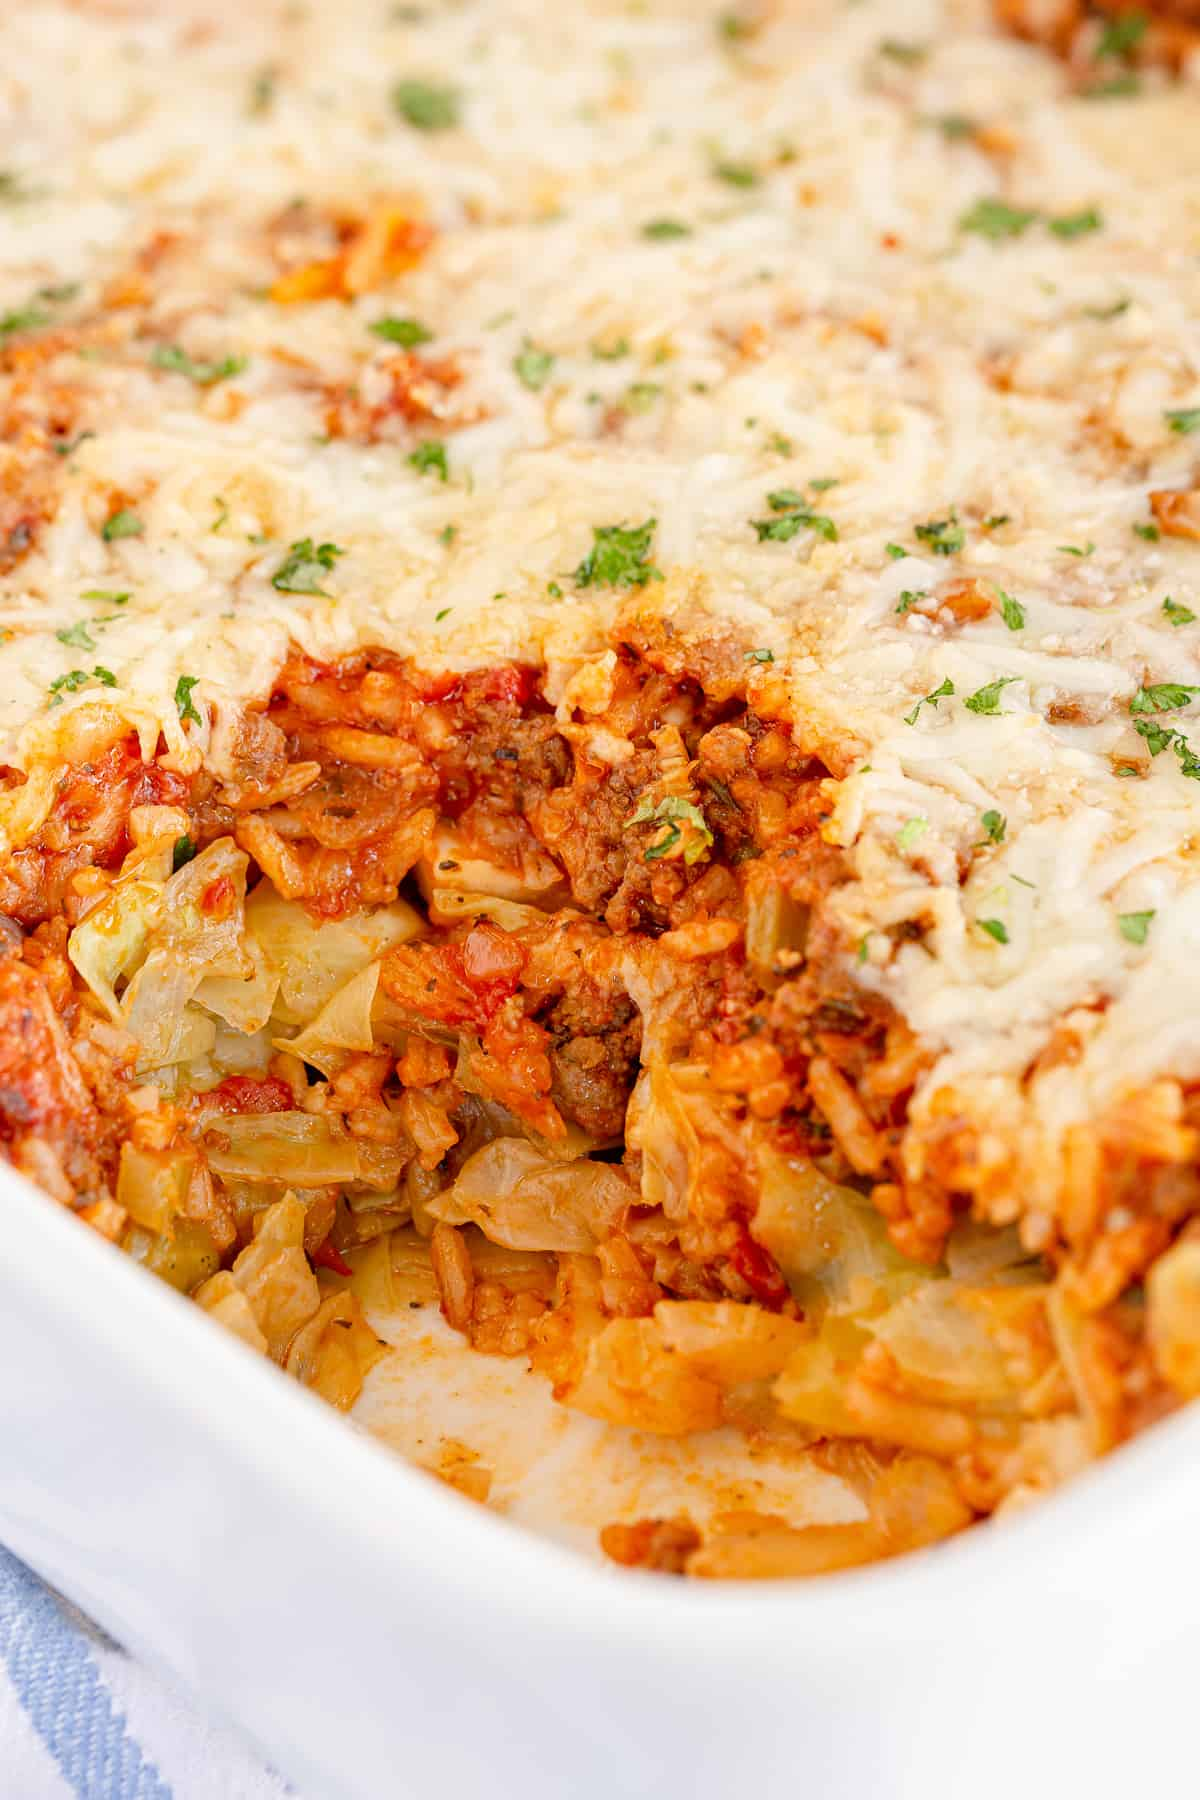 A casserole dish filled with Cabbage Roll Casserole with a scoop missing.